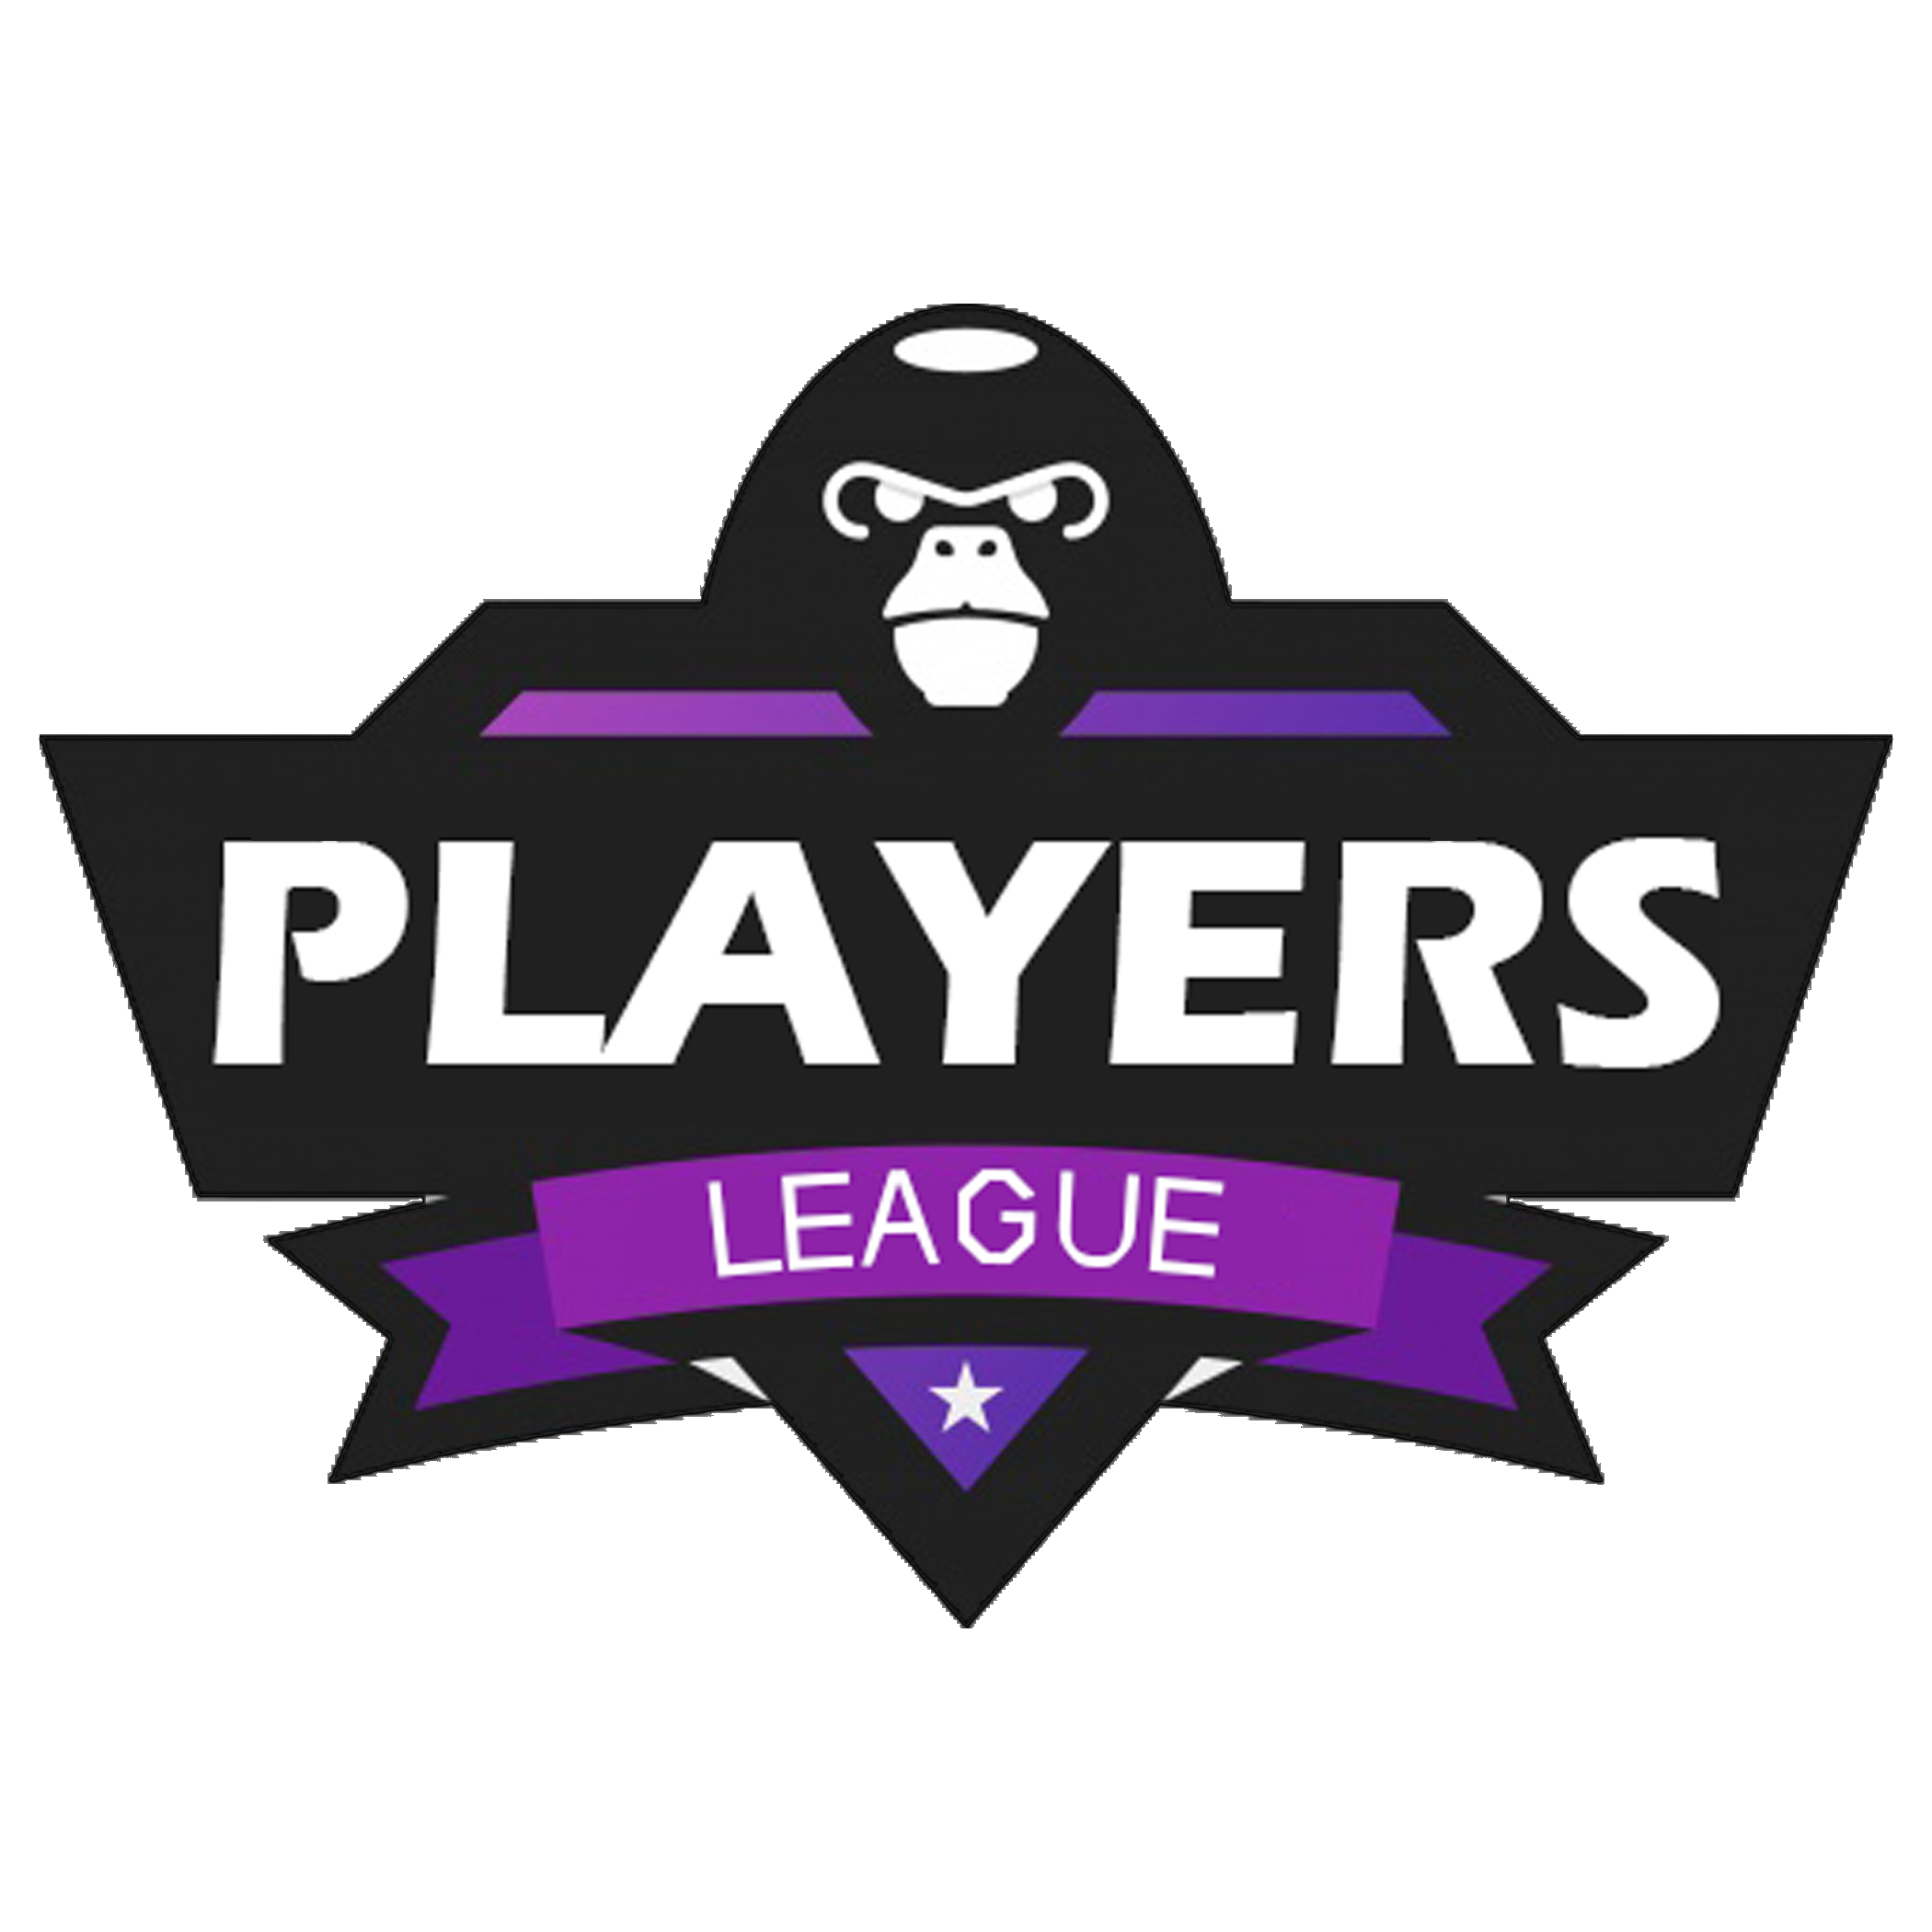 The Players League